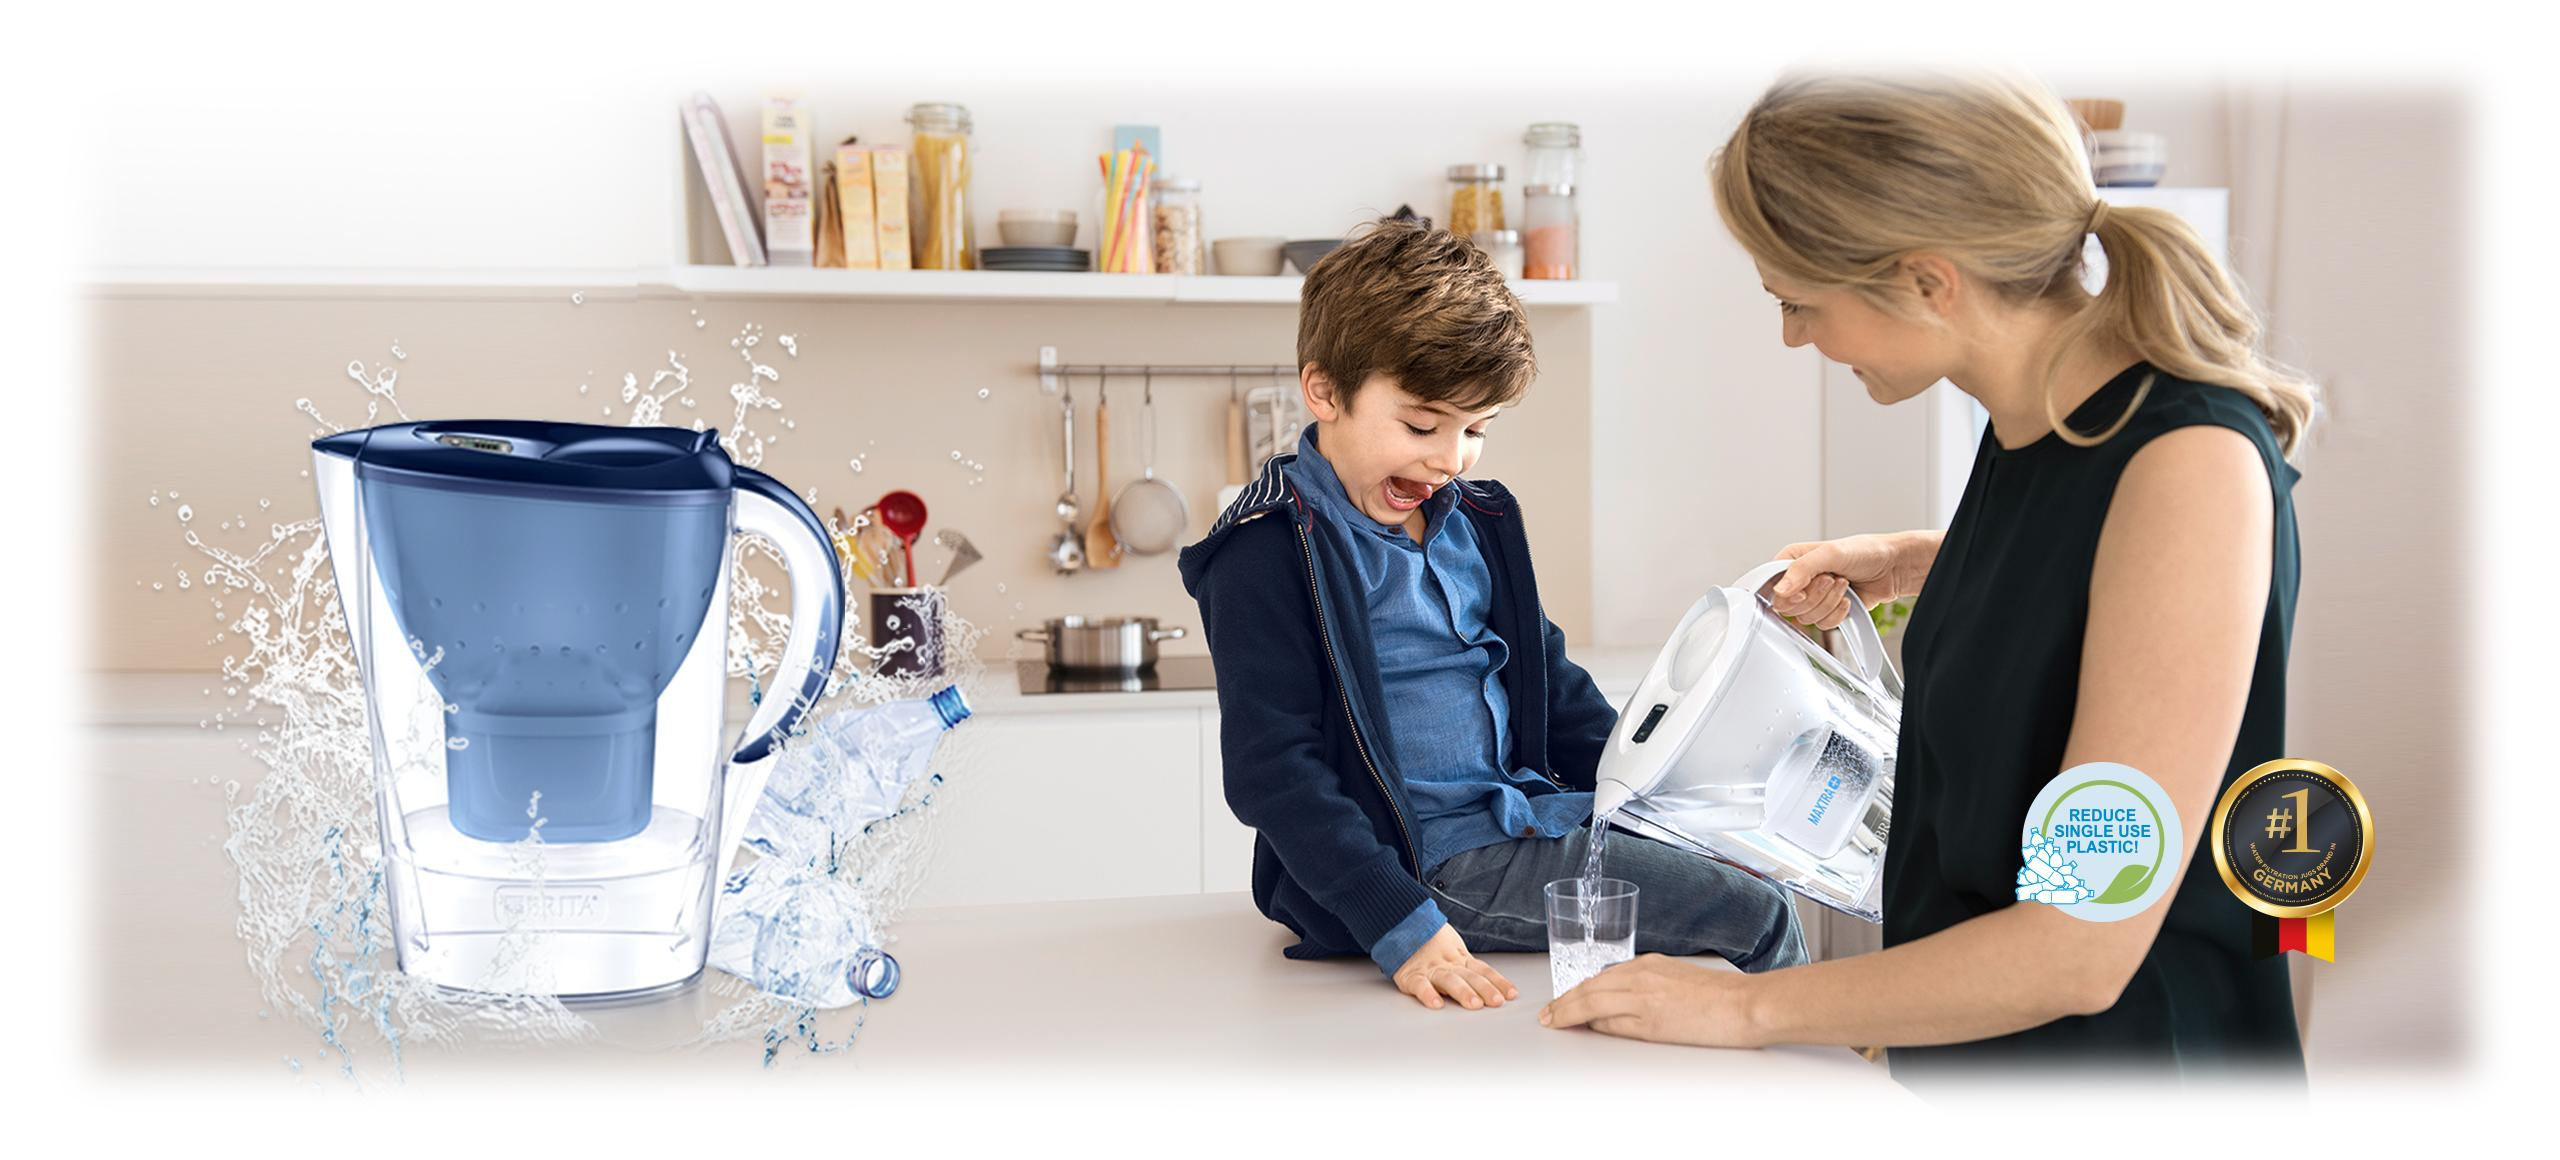 BRITA filter jug and woman with child in kitchen